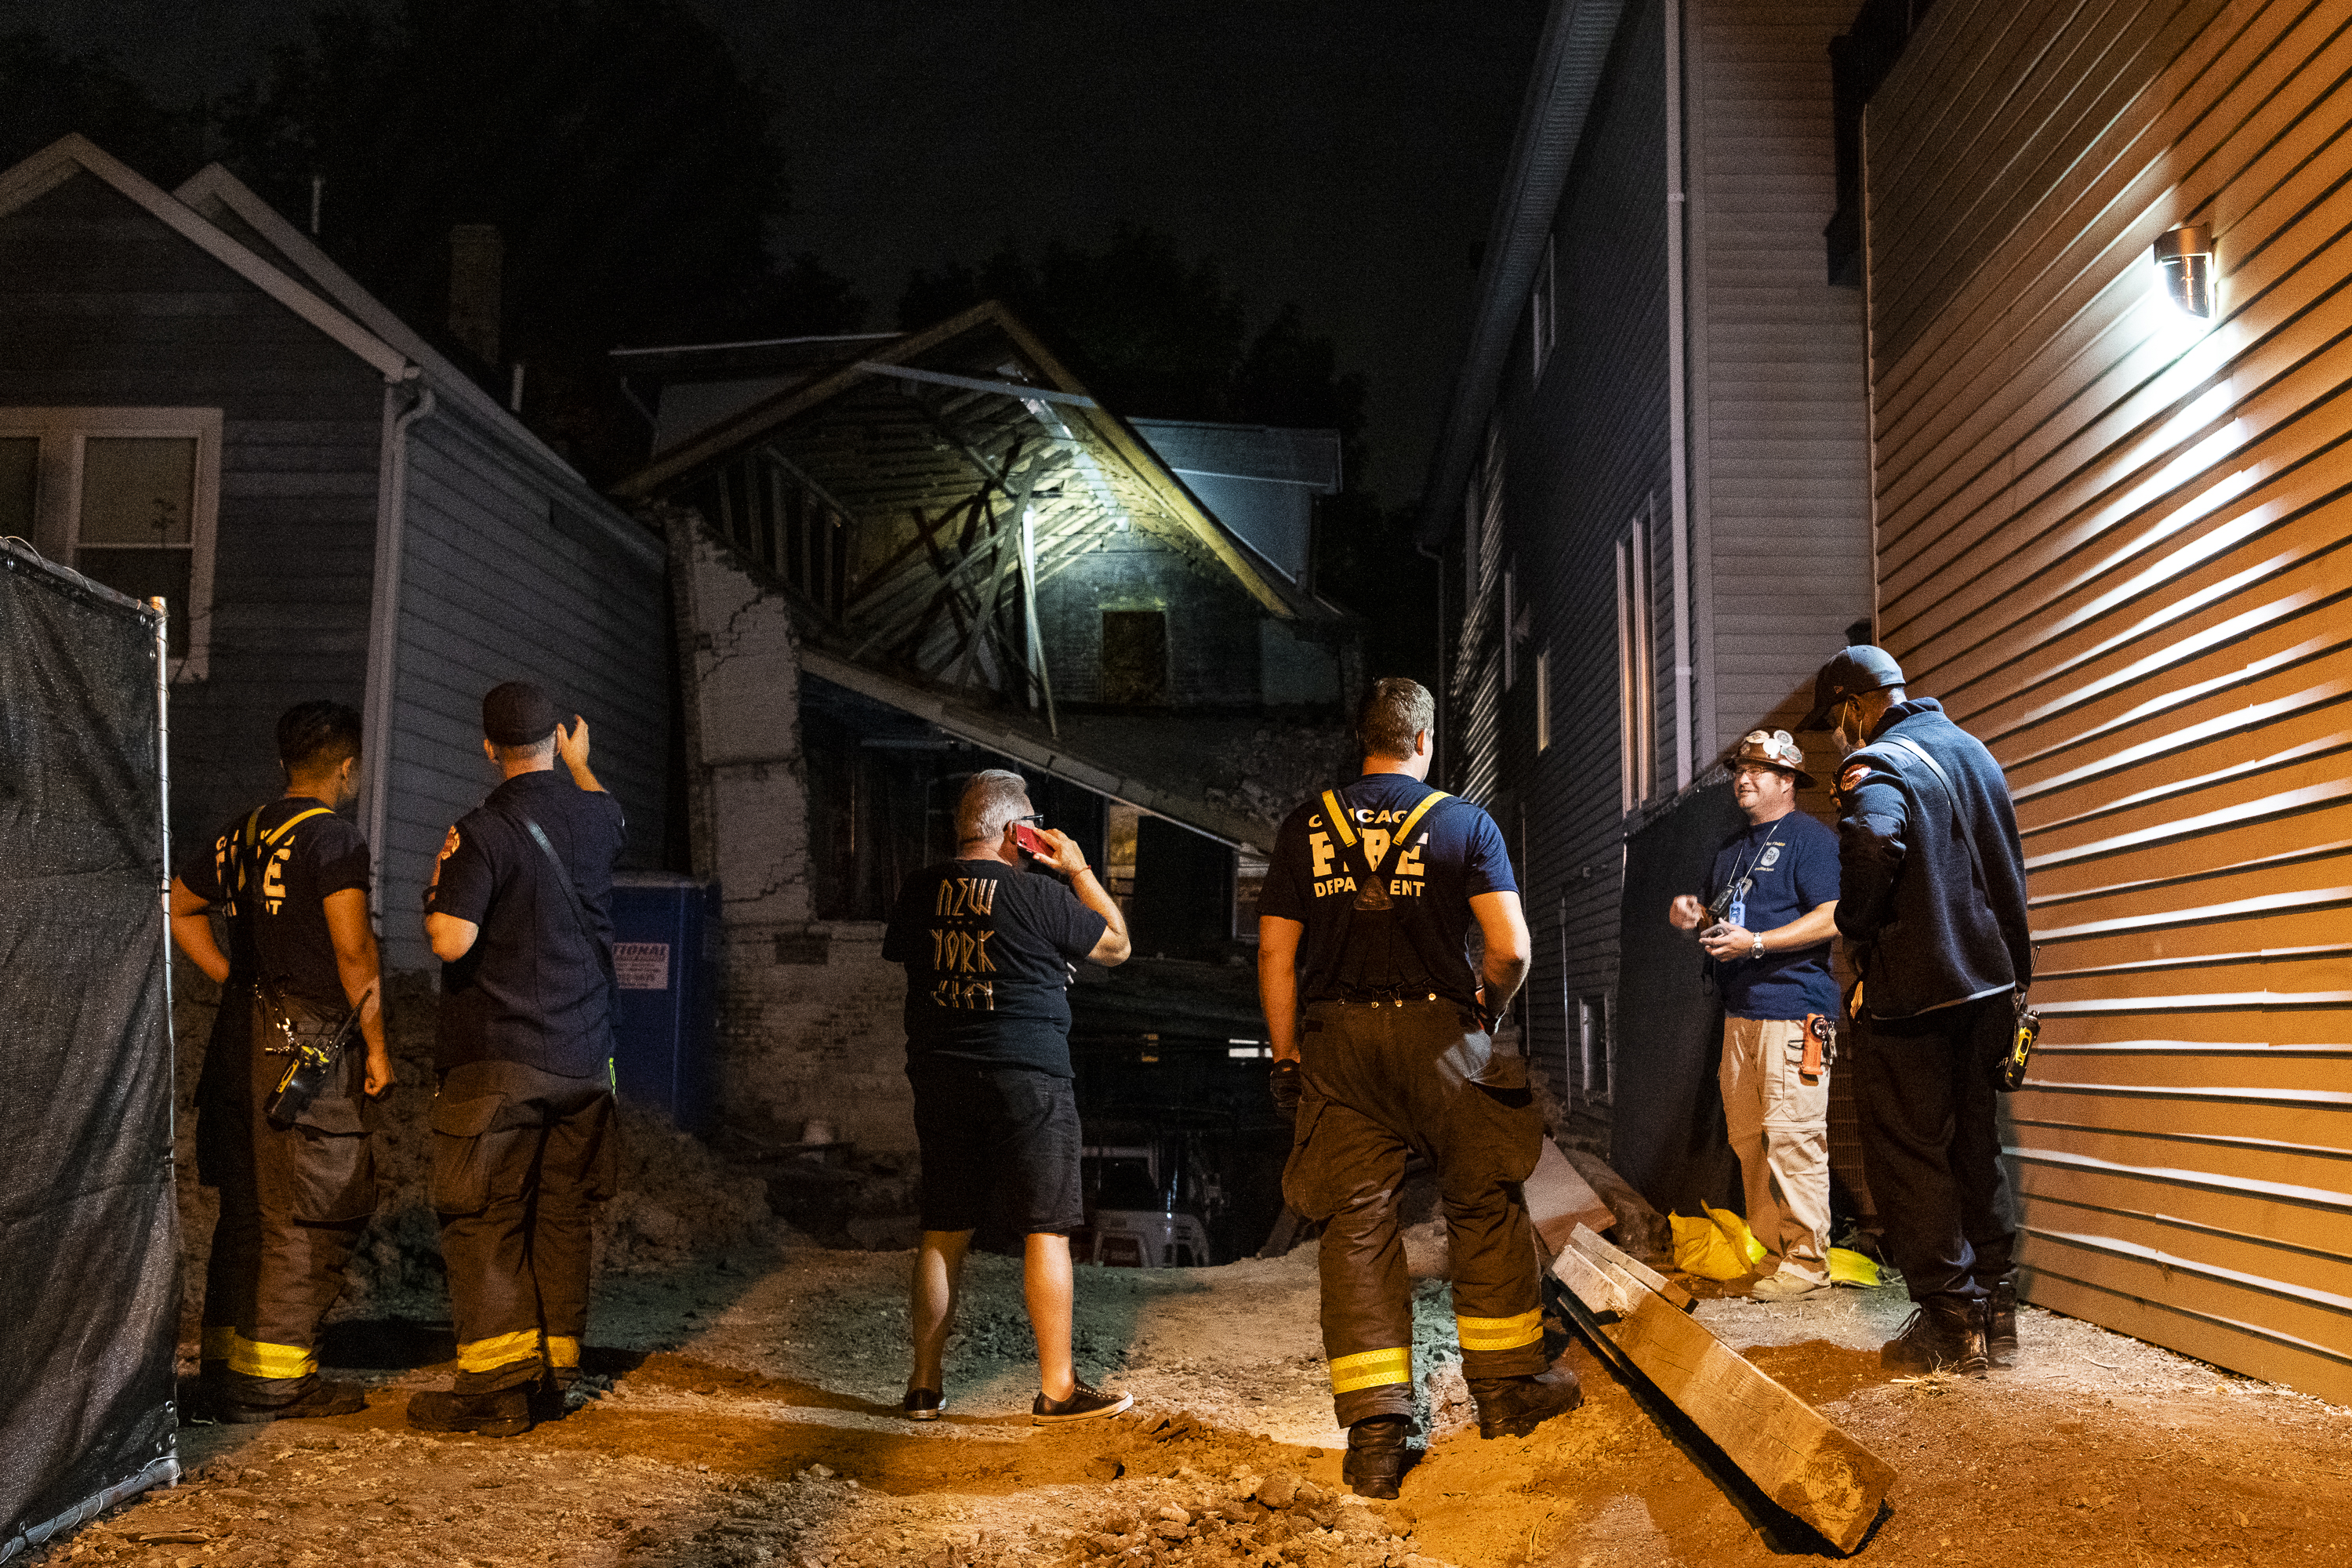 First responders work the scene of a building collapse in the 1000 block of North Marion, in the Wicker Park neighborhood, Tuesday, Sept. 22, 2020.